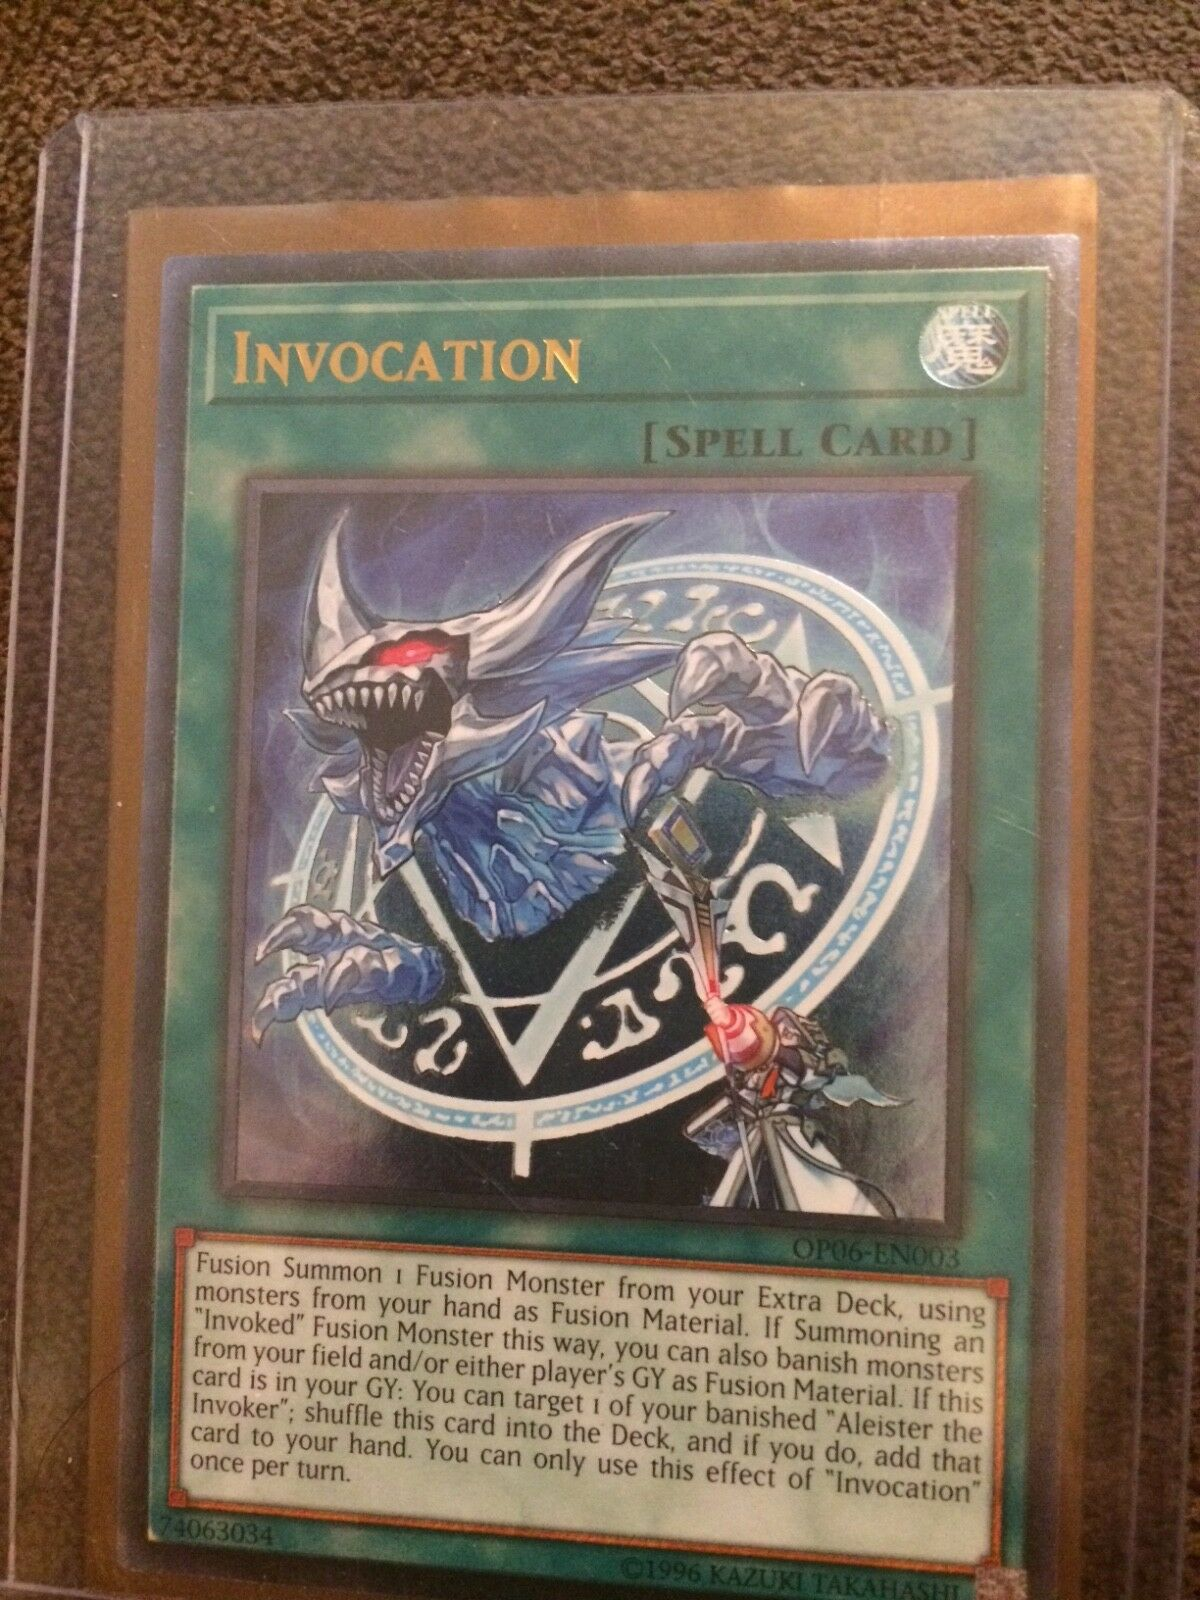 Yugioh Invocation OP06-EN003 Ultimate Rare Near-Mint Konami Spell Card